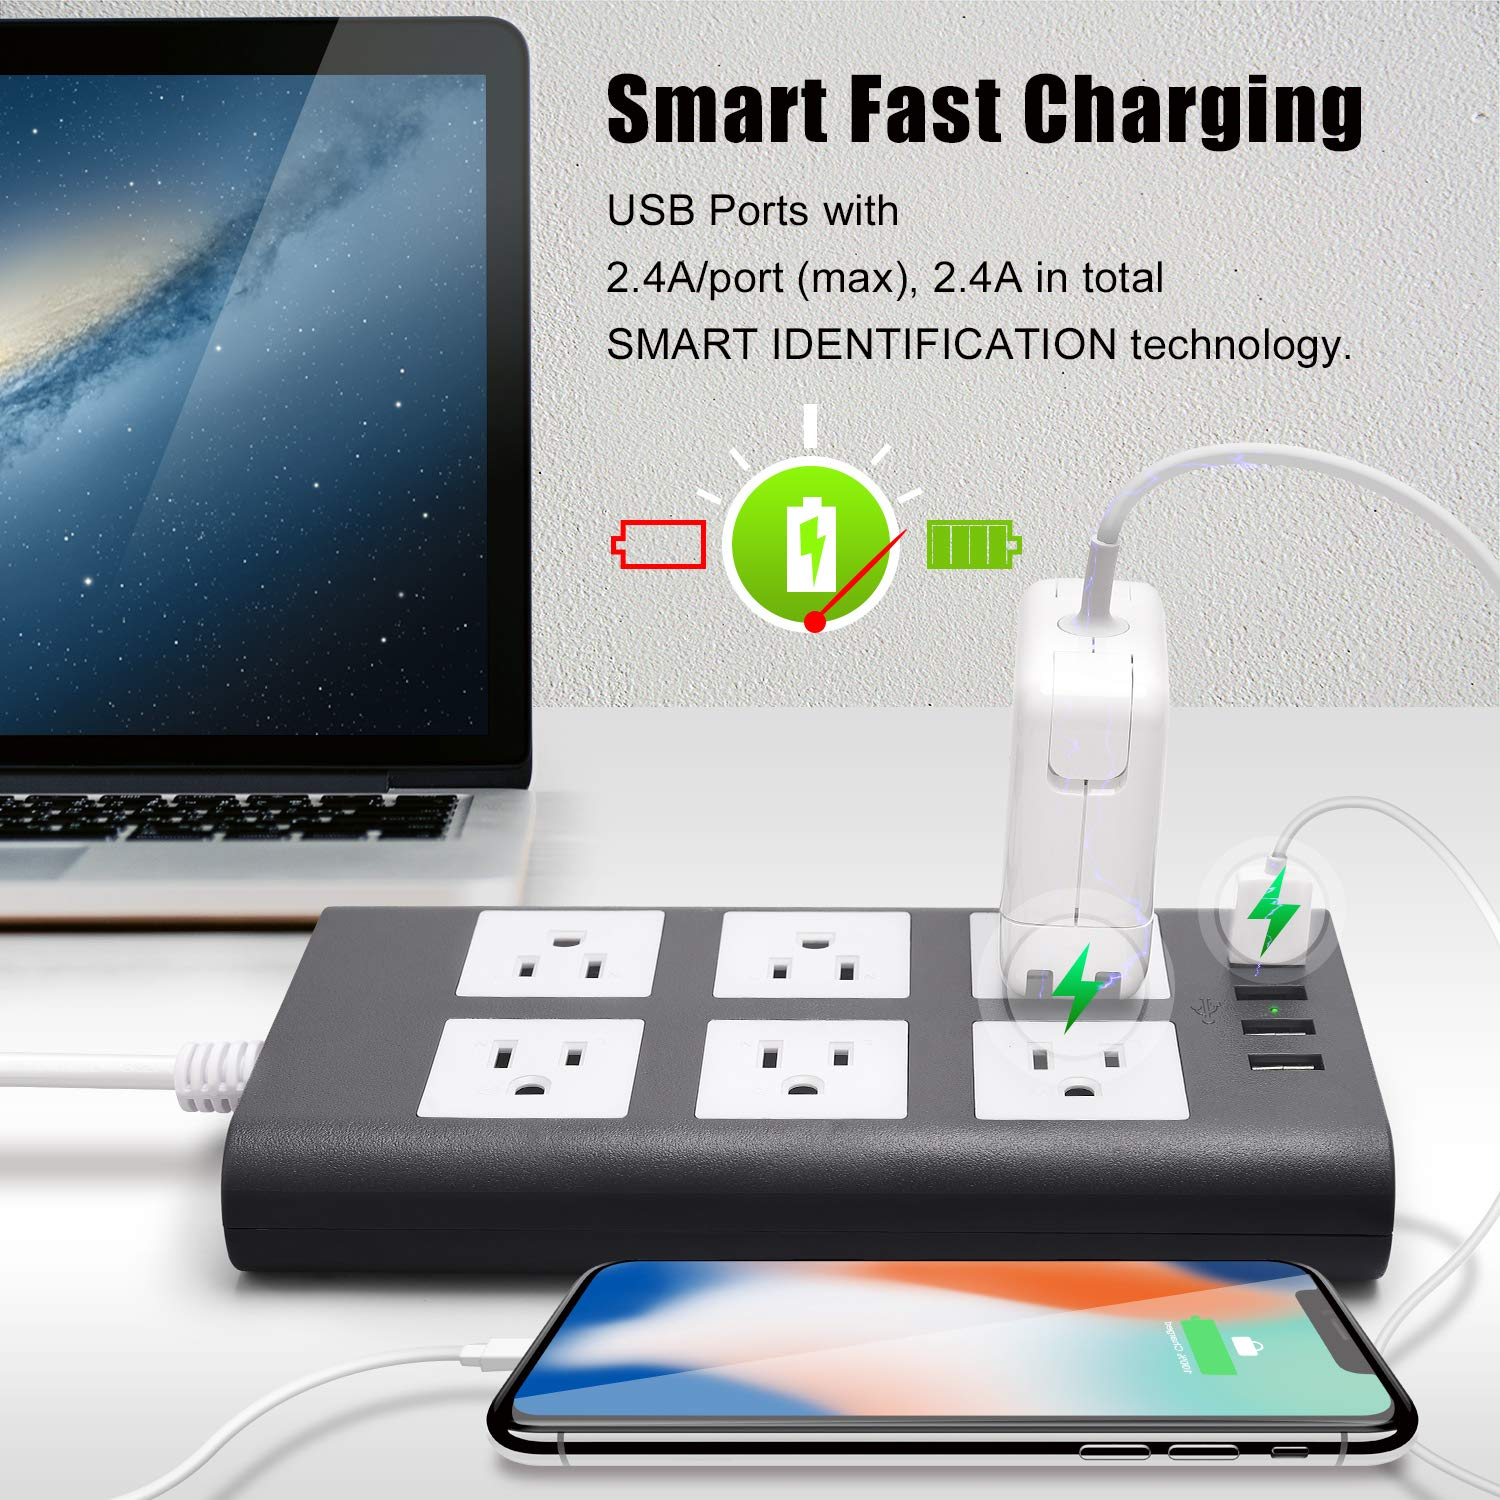 10ft 14AWG 15A Surge Protector Power Strip with USB – SUPERDANNY Heavy Duty Extension Cord Flat Plug 6-Outlet 4 USB 2.4A Fast Charging 1080J for iPhone iPad Home Indoor Office Desktop Gray White